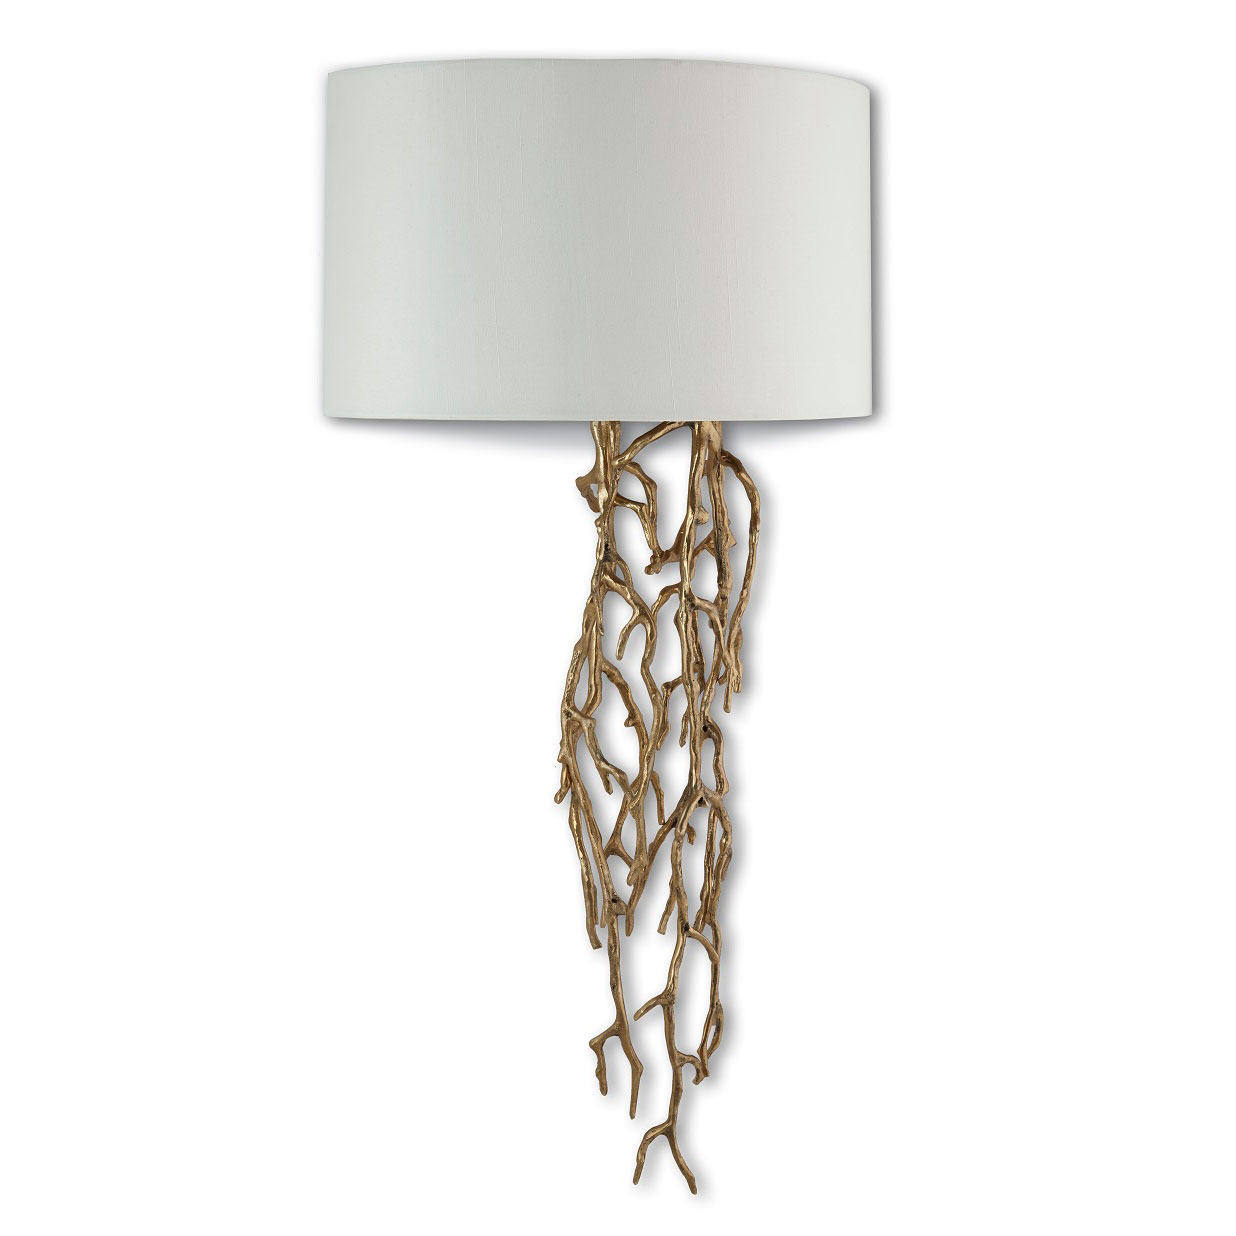 Brinley Wall Lamp solid brass body